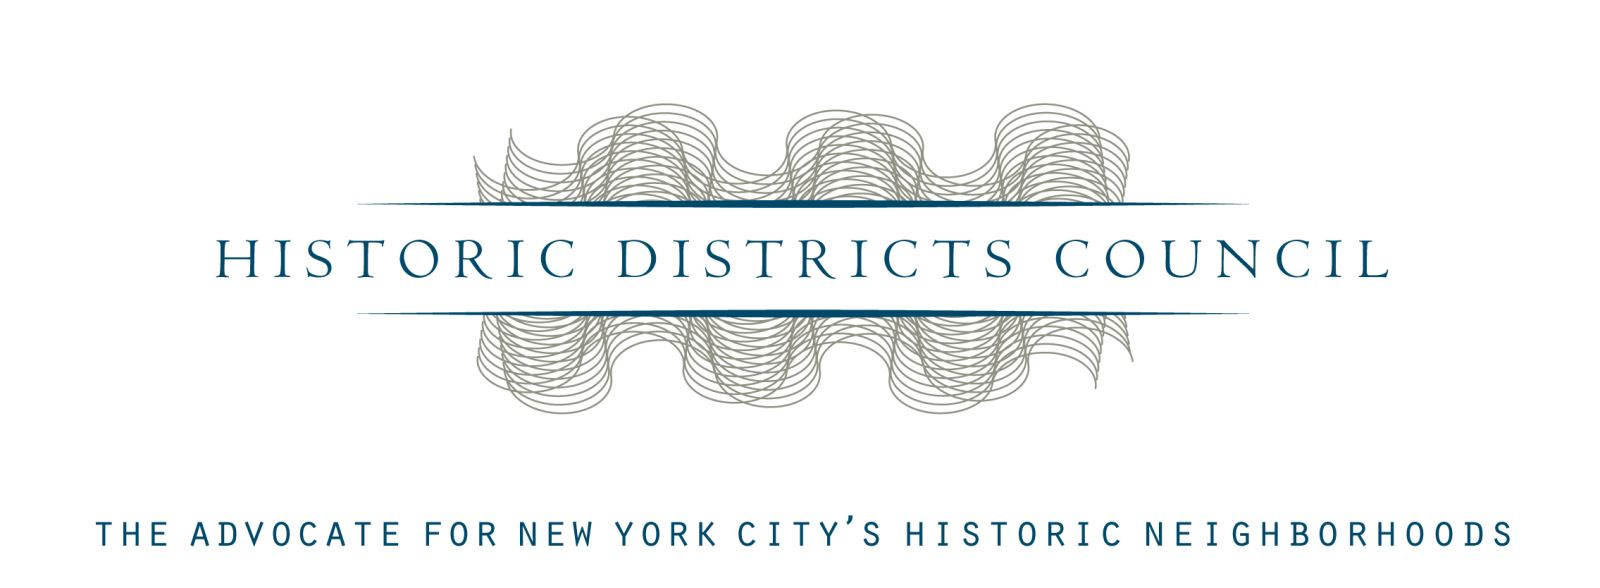 Historic Districts Council